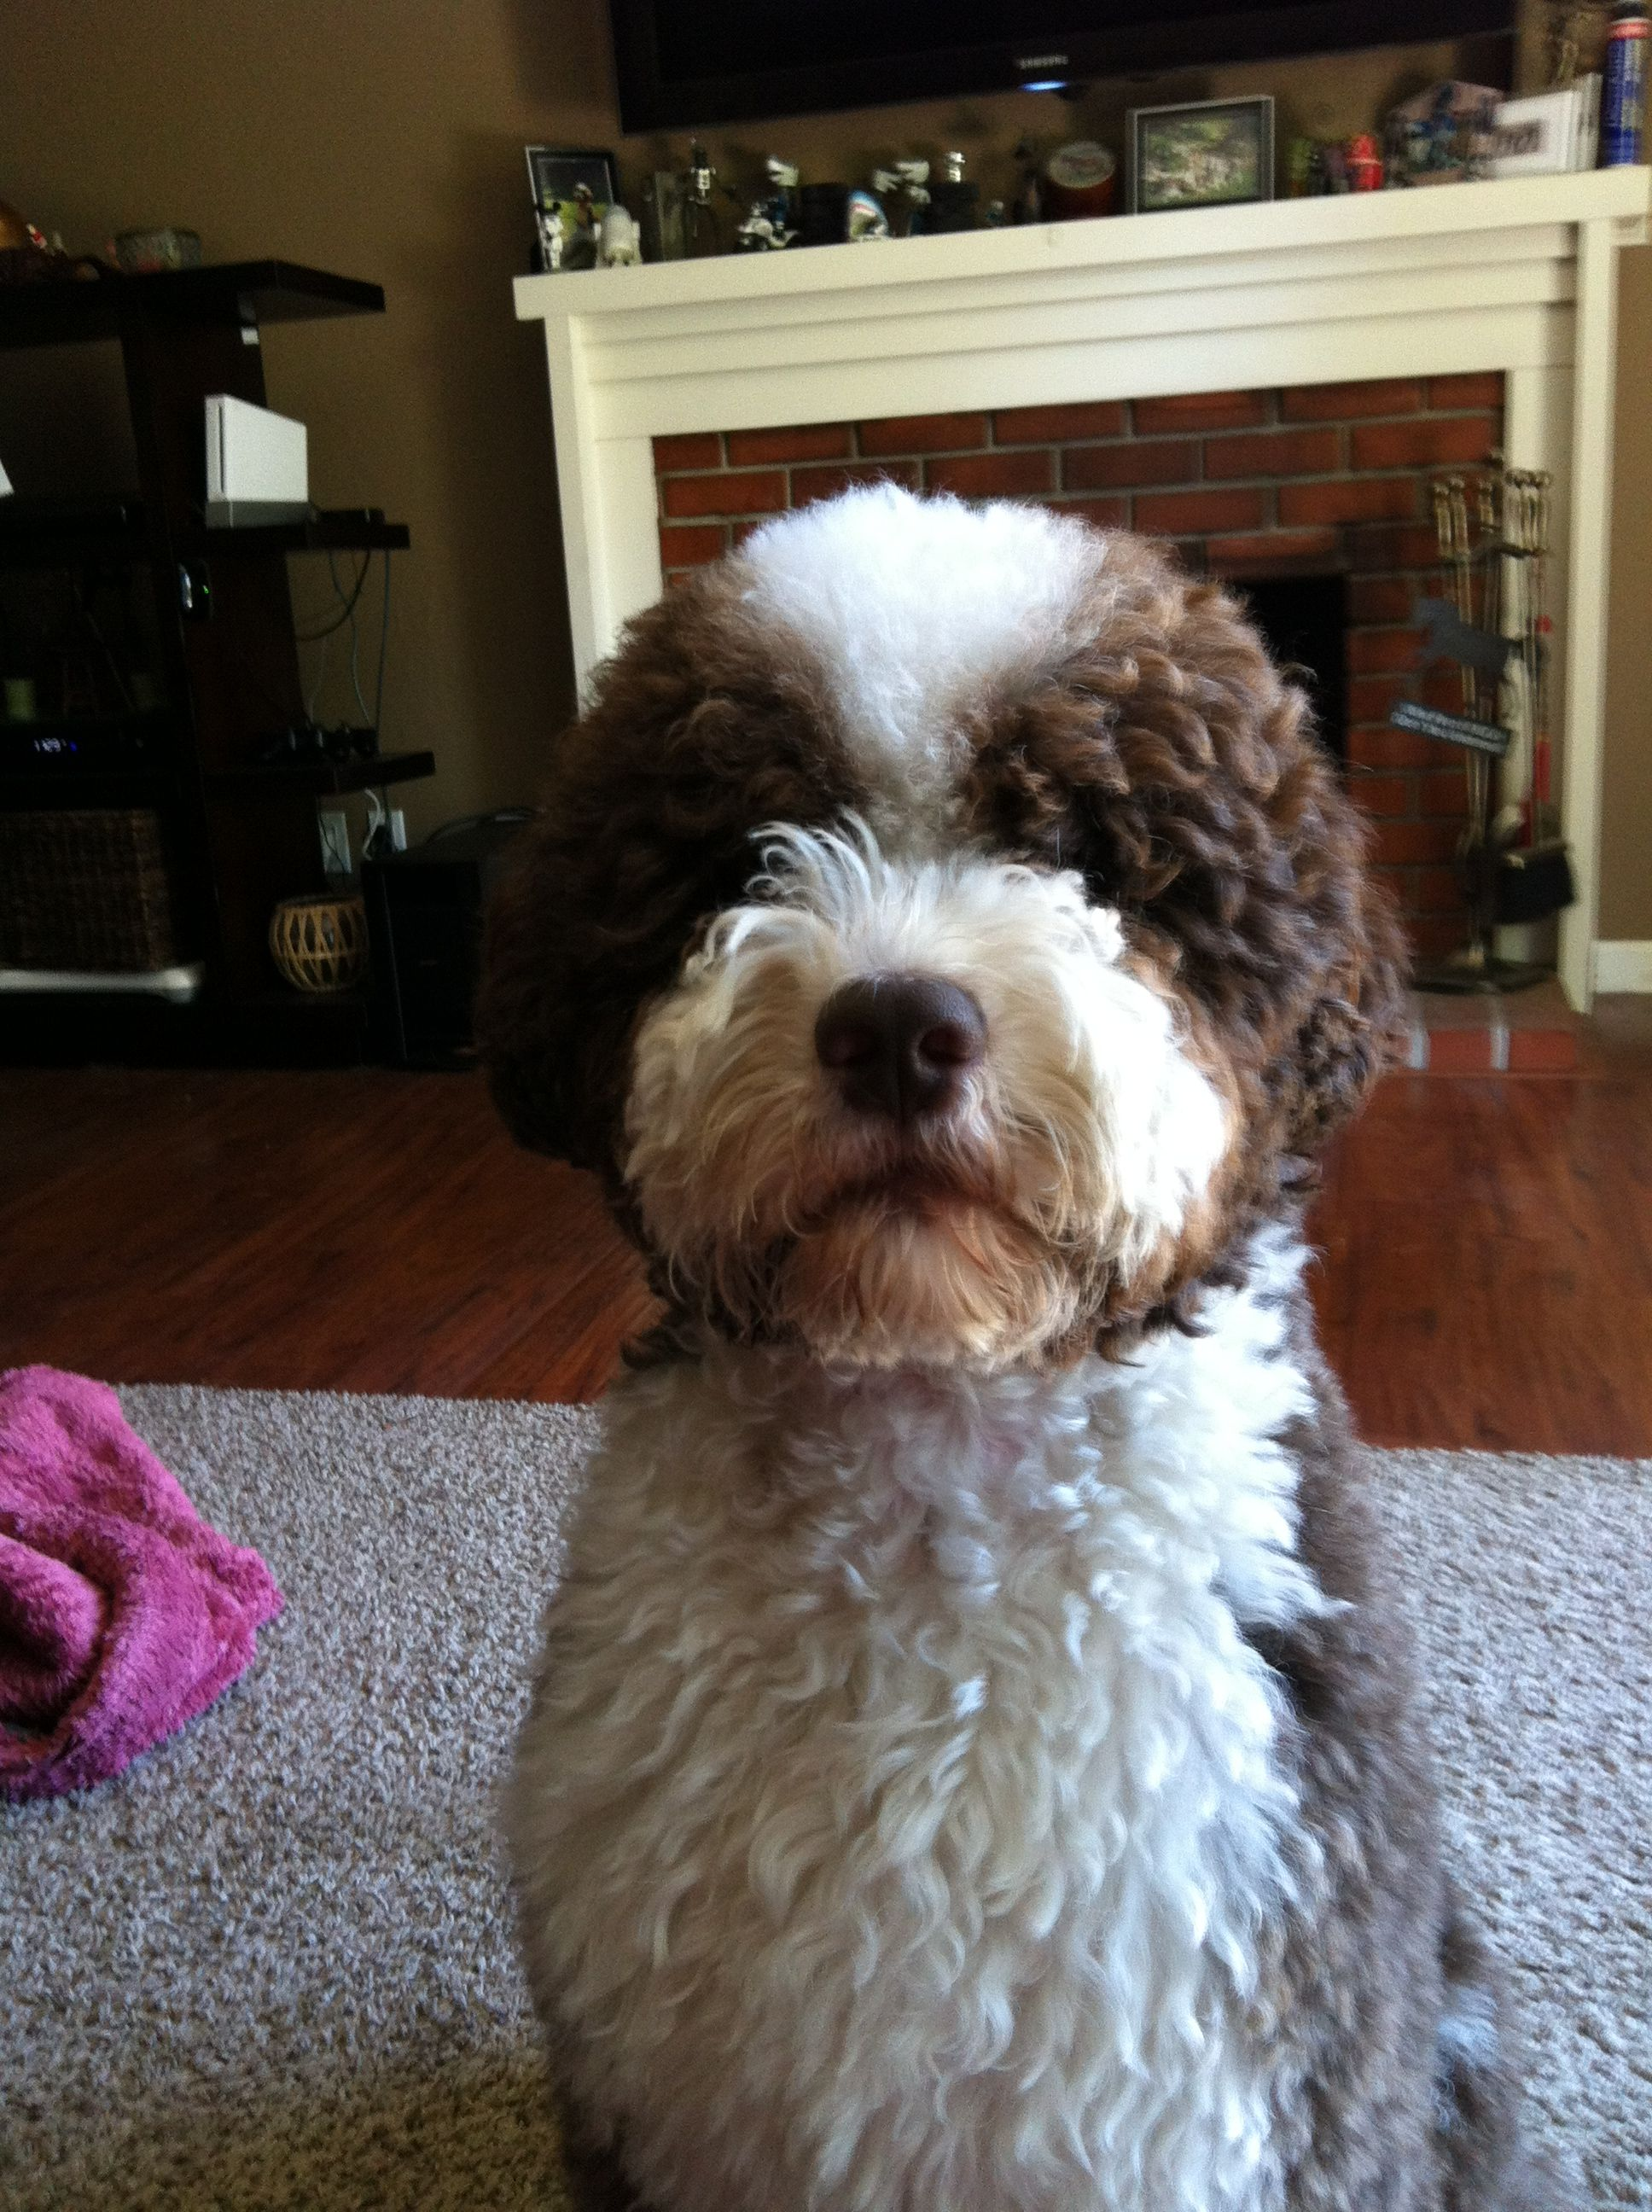 Portuguese Water Dog Brown And White : portuguese, water, brown, white, Portuguese, Water, Reminds, Brown, White, PWD!!, Dogs,, Puppies